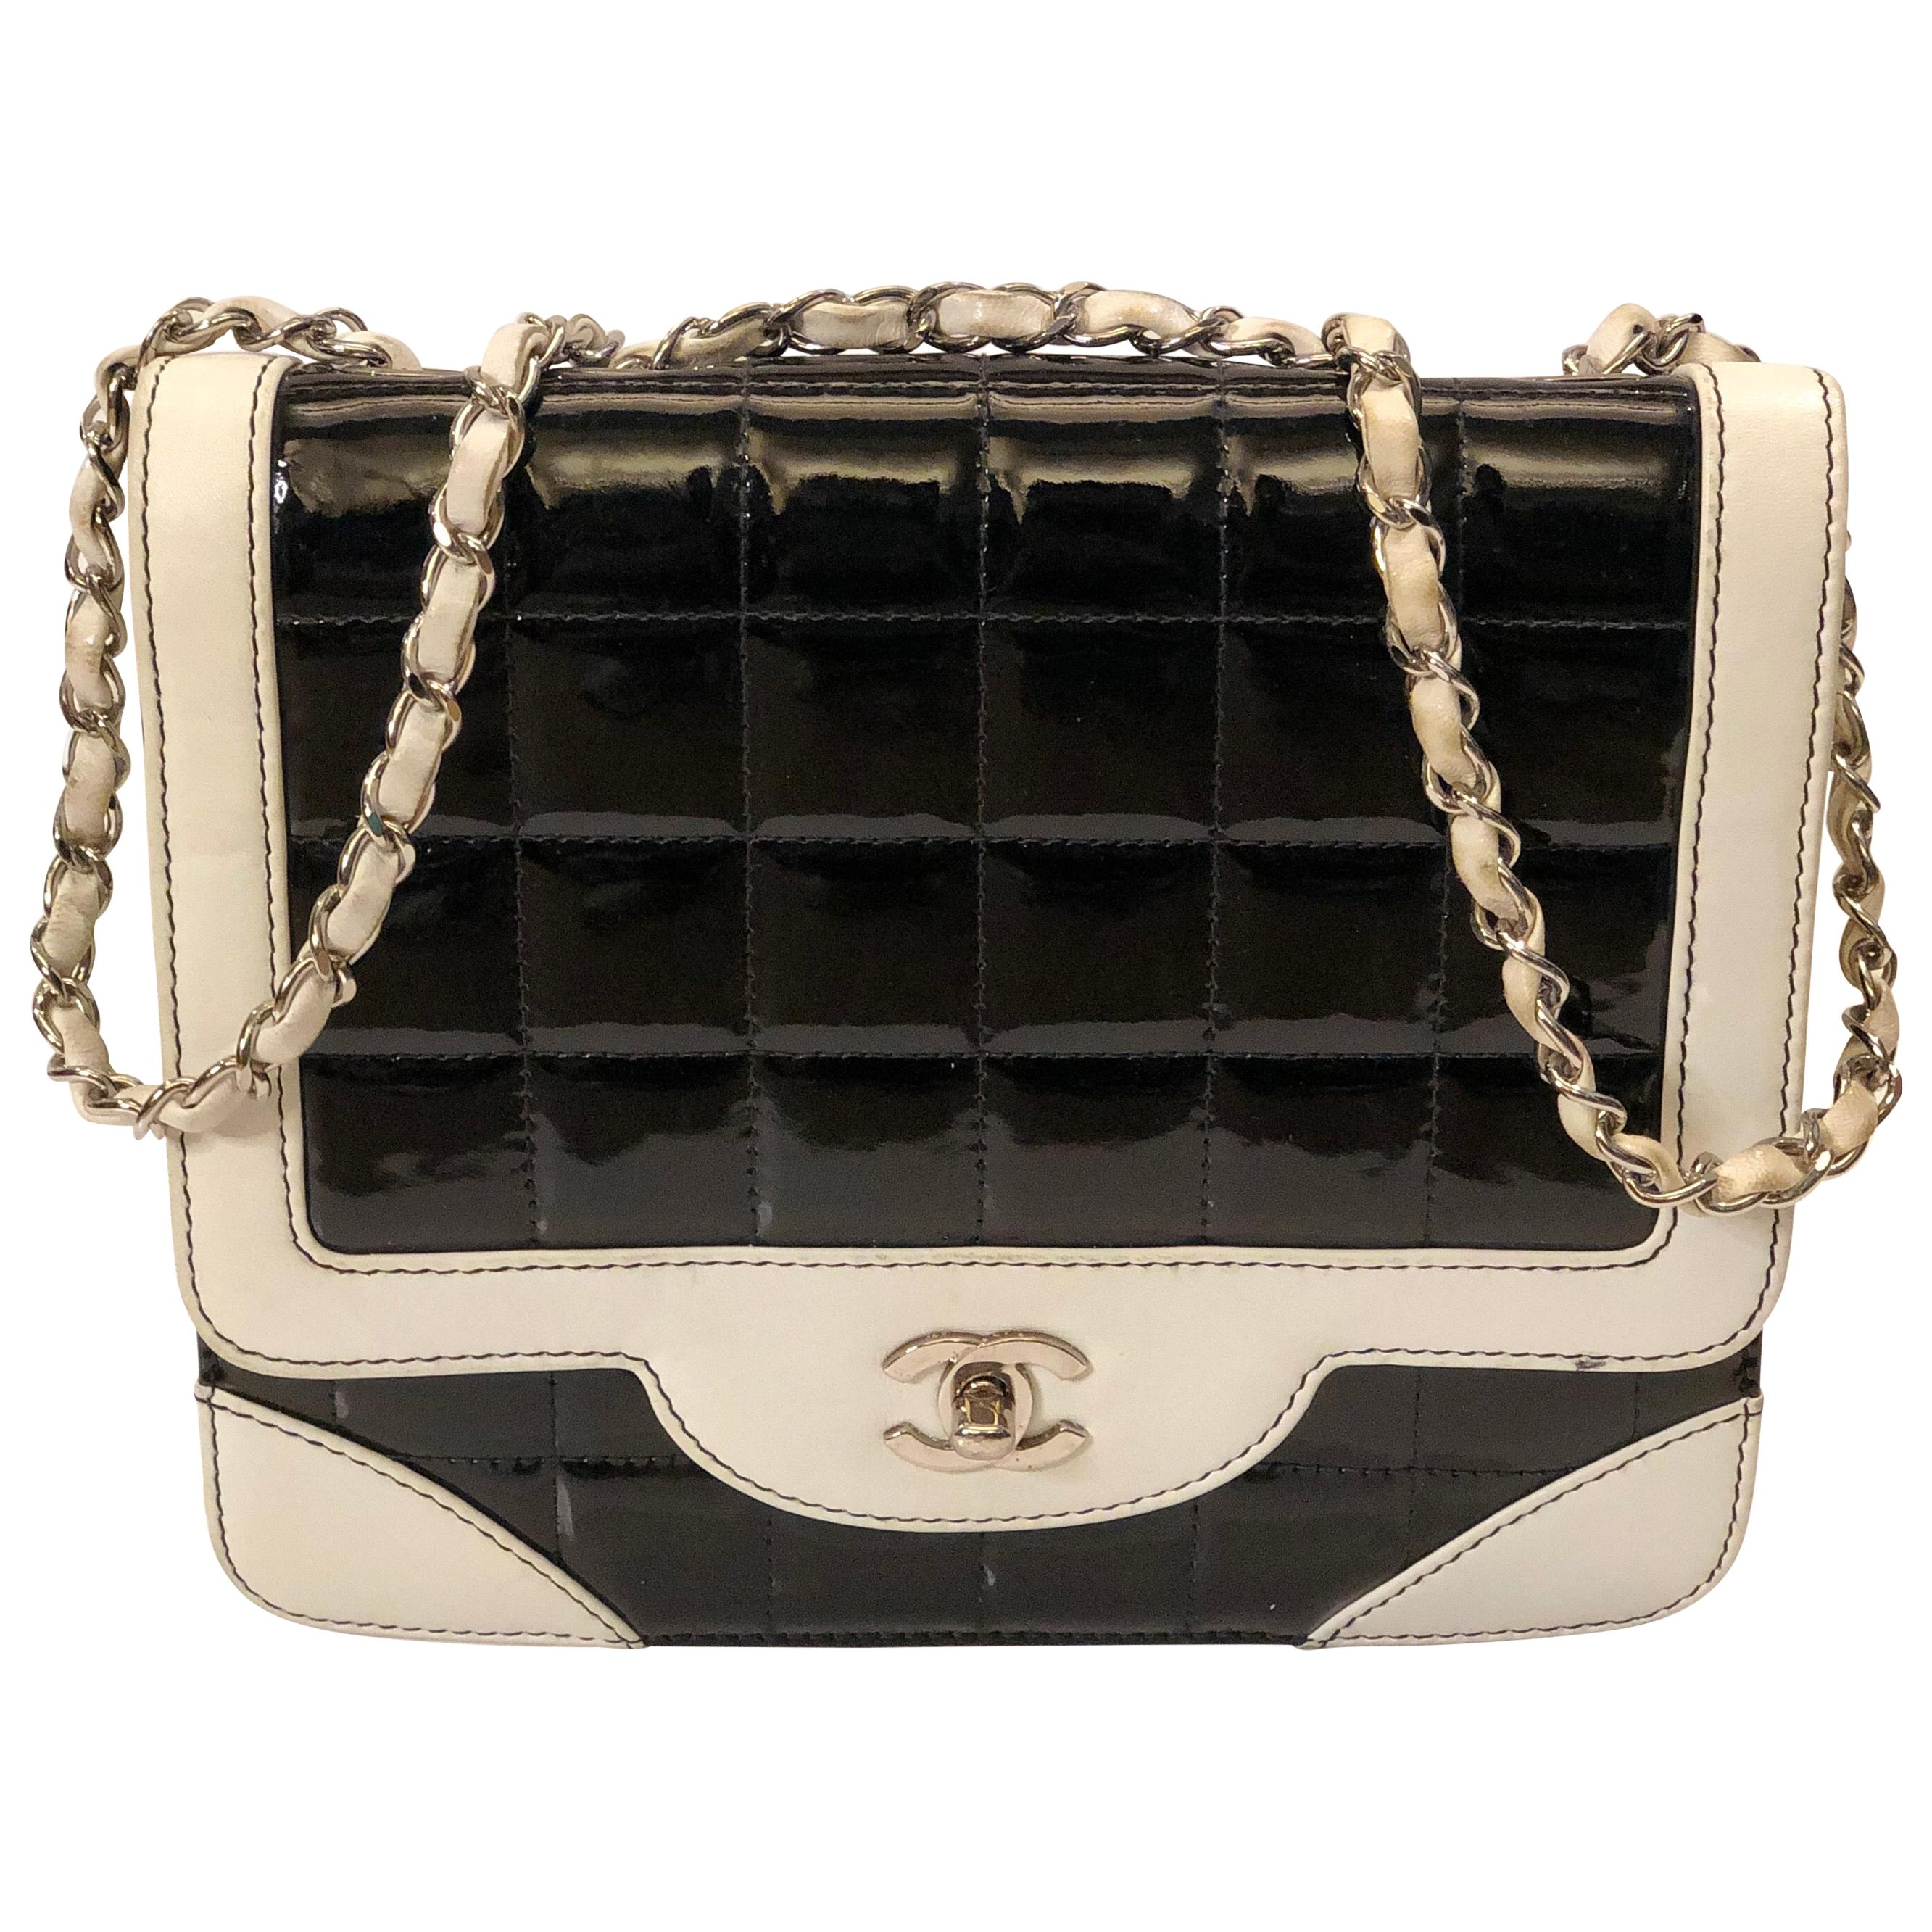 Chanel Black and  White Patent Leather Shoulder Strap bag